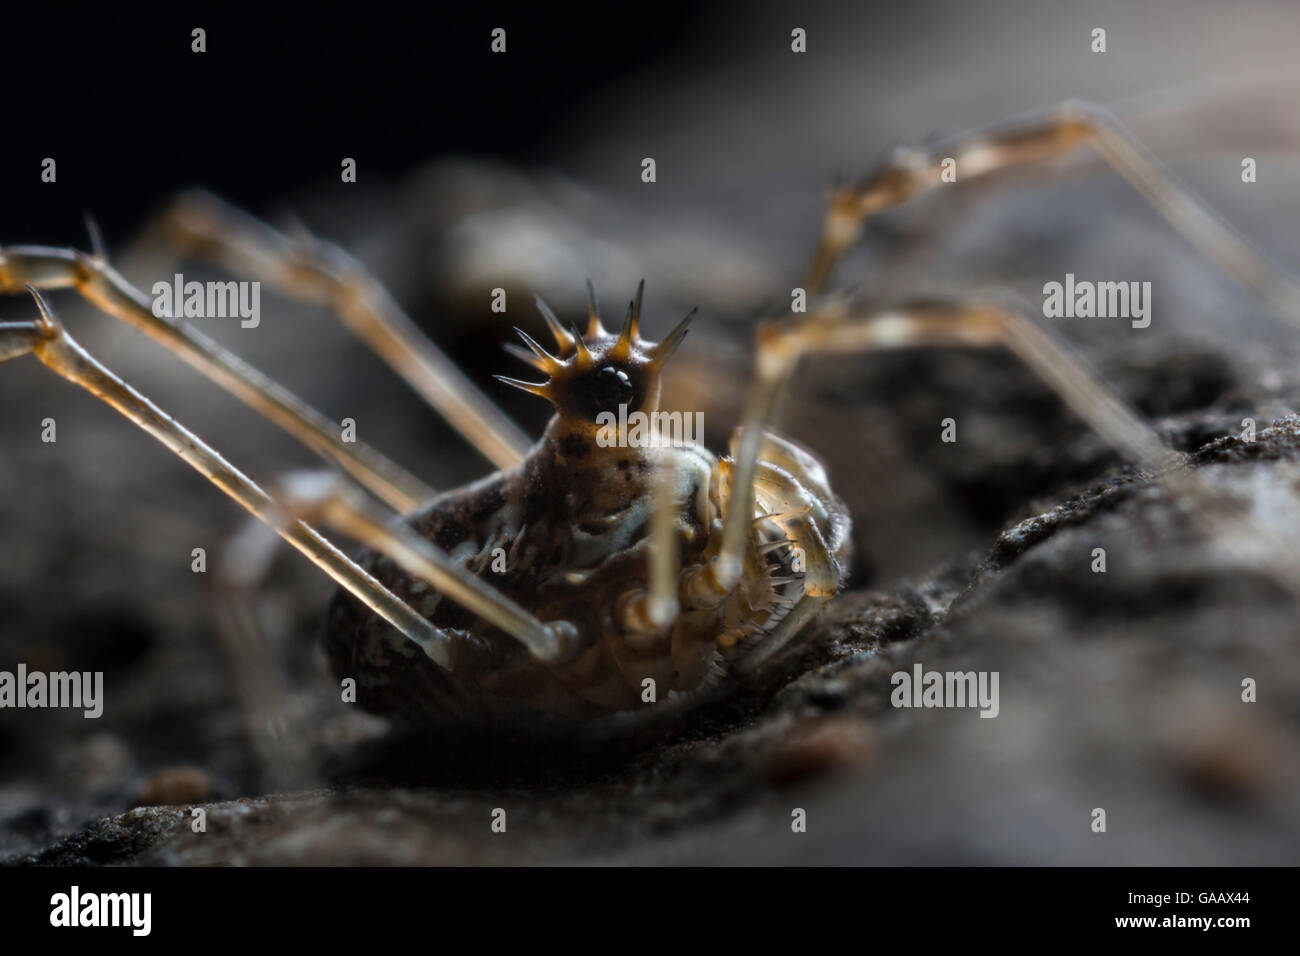 Harvestman (Megabunus diadema) with prominent, spiky eyes,  Peak District National Park, Derbyshire, UK. April - Stock Image